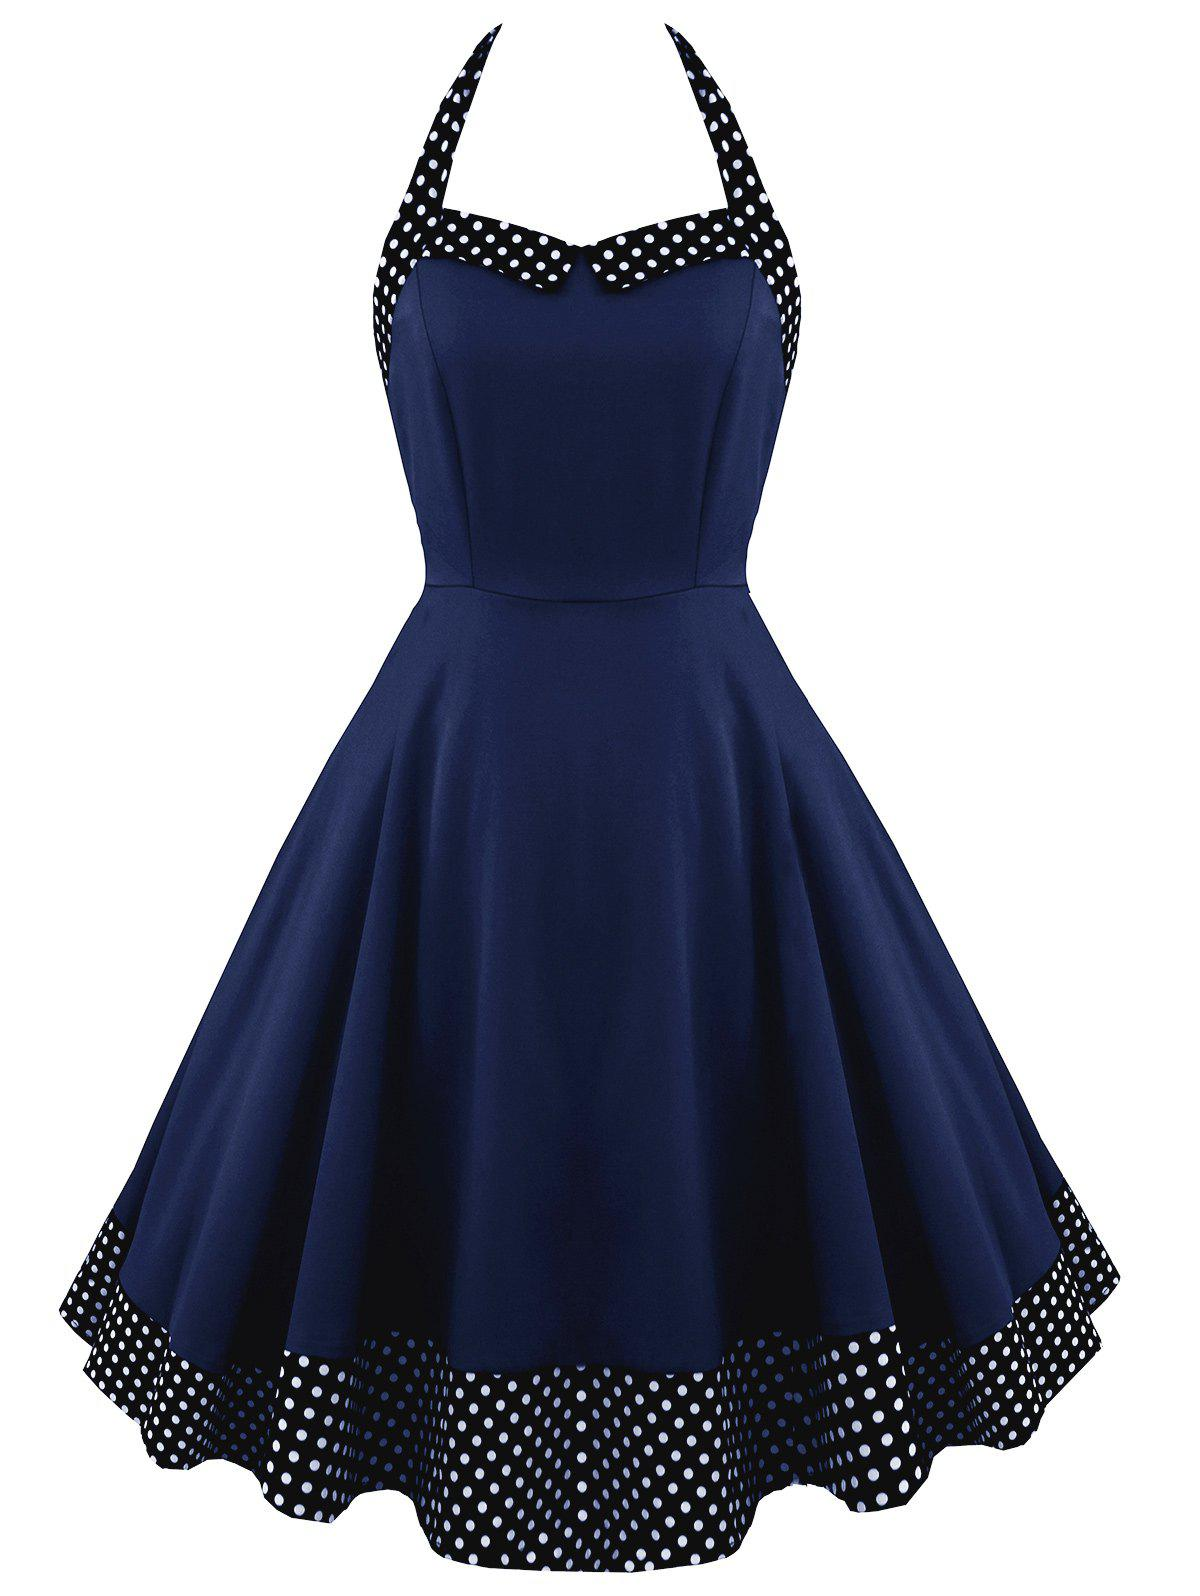 Halter Lace Up Polka Dot Vintage Dress polka dot lace up halter a line dress